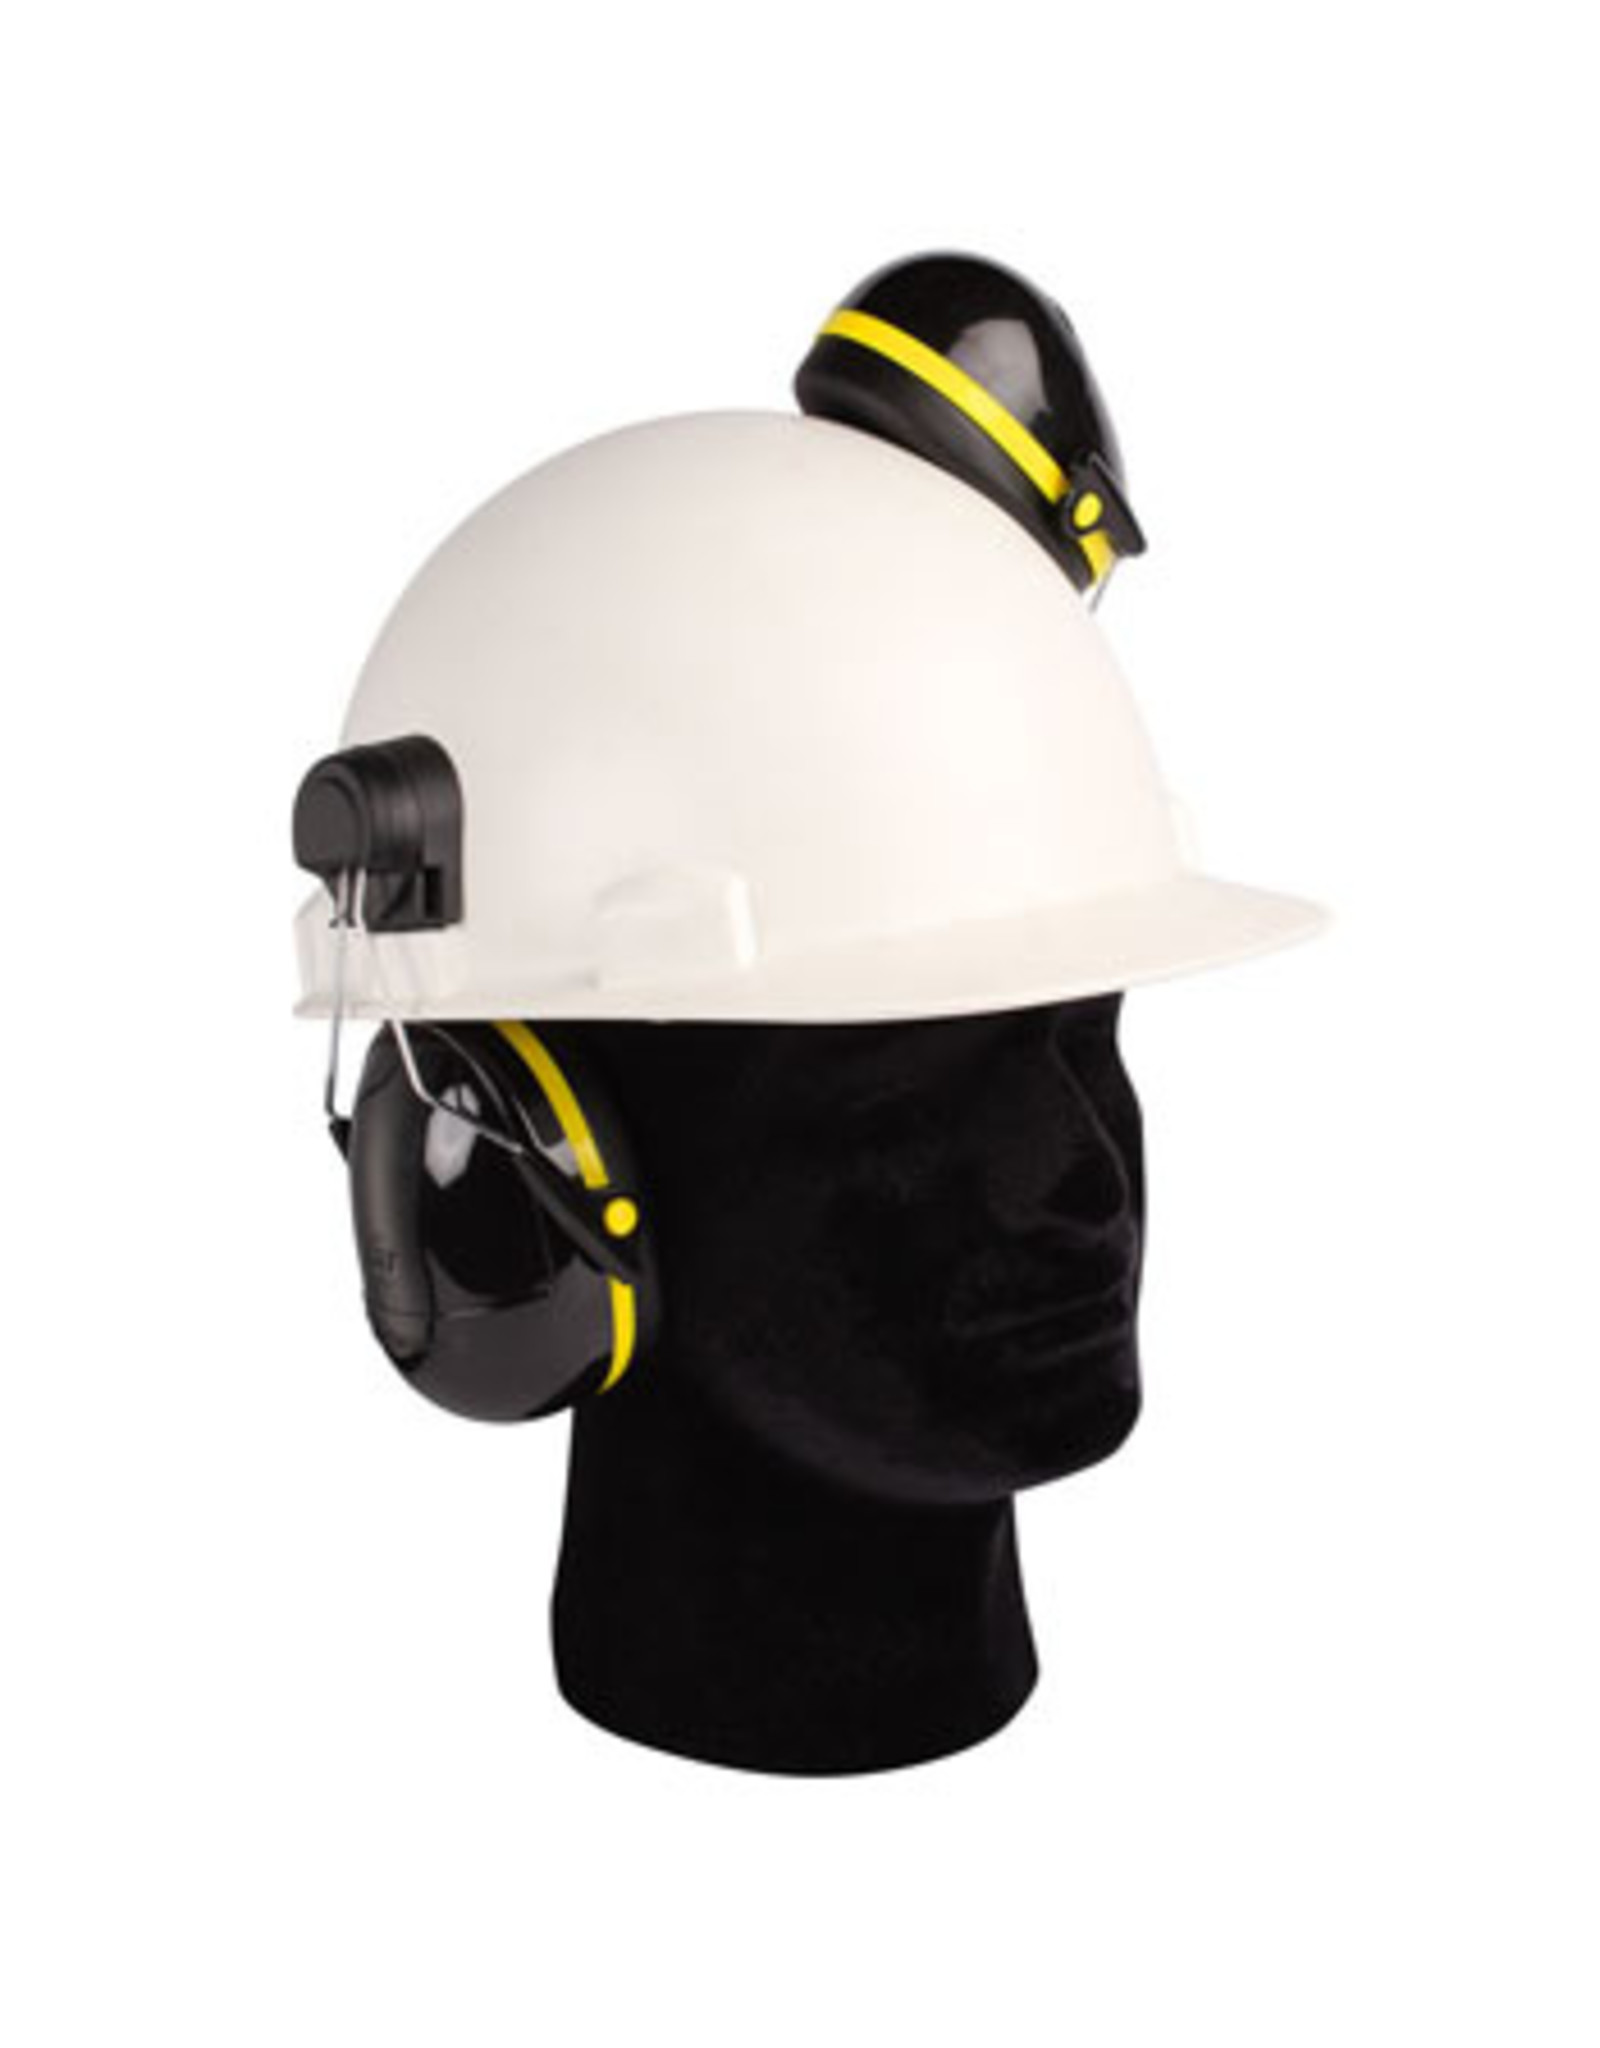 ''mirage'' wire cap mounted ear muffs. light weight, smaller size cups, low profile and highly comfortable. black and yellow